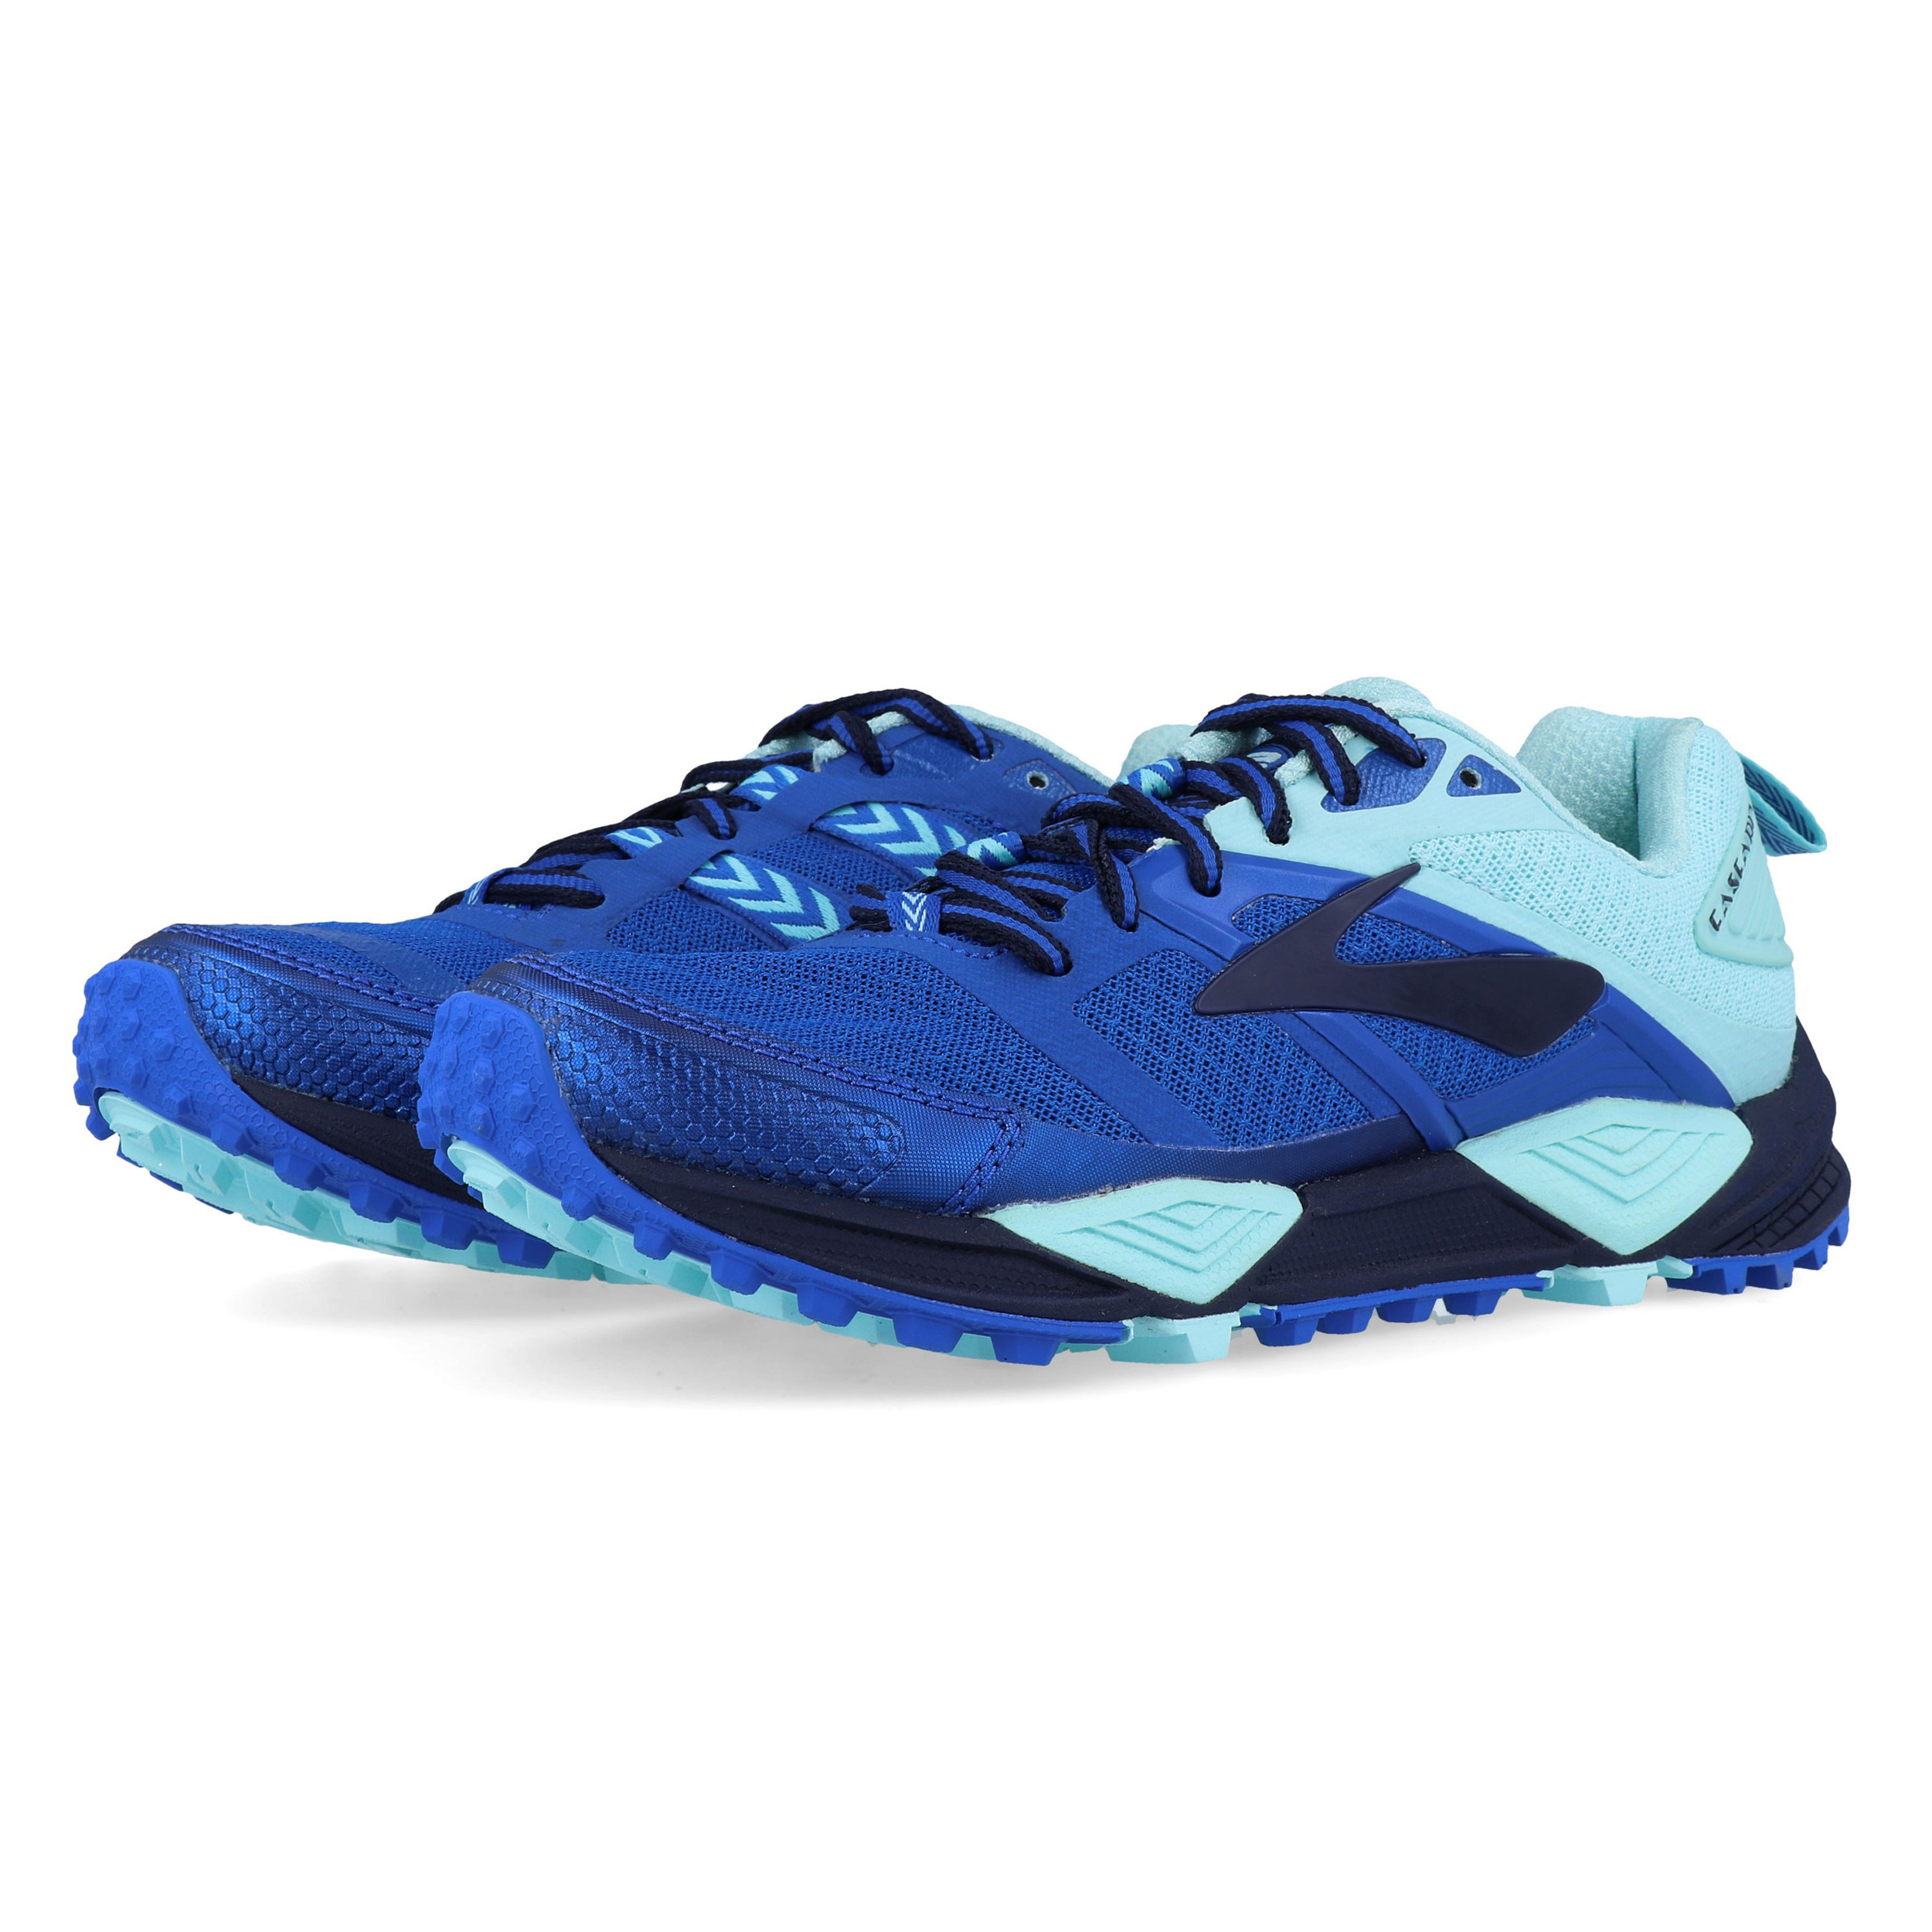 801b4a35ef0 Details about Brooks Womens Cascadia 12 Trail Running Shoes Trainers  Sneakers Blue Navy Sports